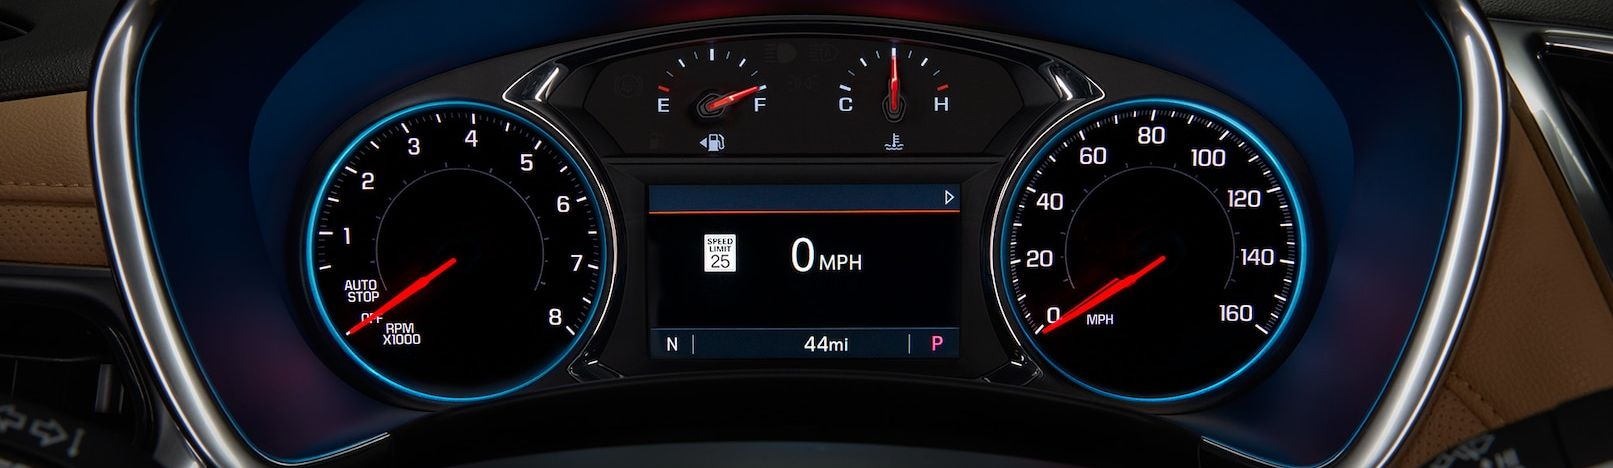 Information Cluster in the 2019 Equinox